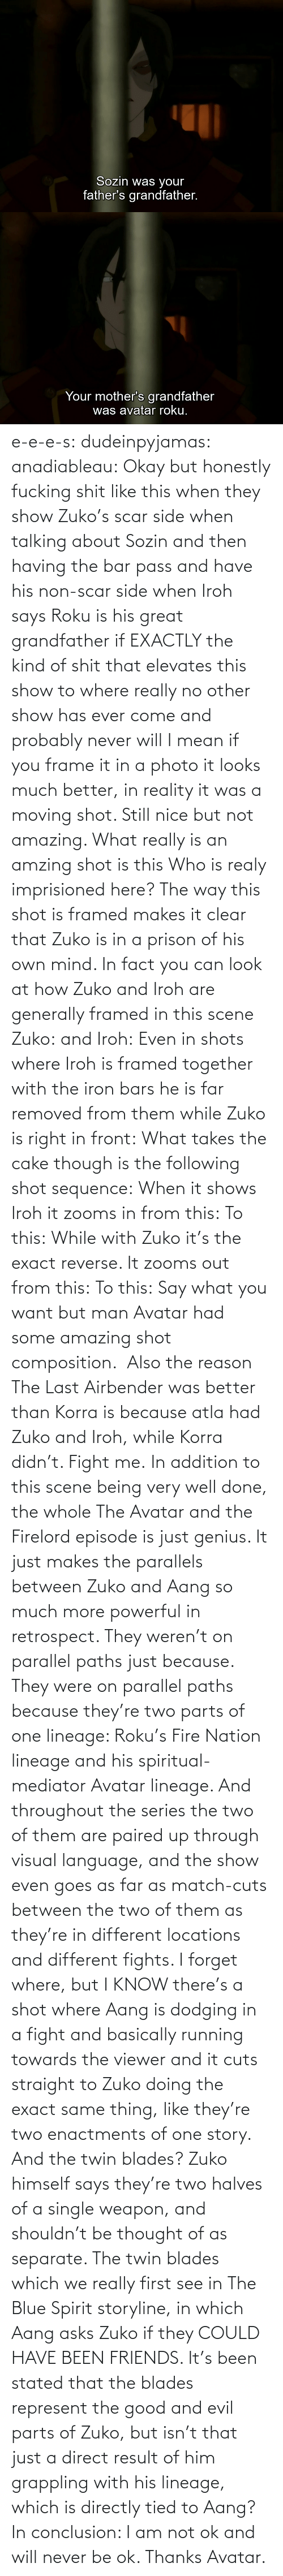 Okay: e-e-e-s: dudeinpyjamas:   anadiableau: Okay but honestly fucking shit like this when they show Zuko's scar side when talking about Sozin and then having the bar pass and have his non-scar side when Iroh says Roku is his great grandfather if EXACTLY the kind of shit that elevates this show to where really no other show has ever come and probably never will I mean if you frame it in a photo it looks much better, in reality it was a moving shot. Still nice but not amazing. What really is an amzing shot is this Who is realy imprisioned here? The way this shot is framed makes it clear that Zuko is in a prison of his own mind. In fact you can look at how Zuko and Iroh are generally framed in this scene Zuko: and Iroh: Even in shots where Iroh is framed together with the iron bars he is far removed from them while Zuko is right in front:  What takes the cake though is the following shot sequence: When it shows Iroh it zooms in from this: To this: While with Zuko it's the exact reverse. It zooms out from this: To this: Say what you want but man Avatar had some amazing shot composition.   Also the reason The Last Airbender was better than Korra is because atla had Zuko and Iroh, while Korra didn't. Fight me.    In addition to this scene being very well done, the whole The Avatar and the Firelord episode is just genius.  It just makes the parallels between Zuko and Aang so much more powerful in retrospect.  They weren't on parallel paths just because.  They were on parallel paths because they're two parts of one lineage: Roku's Fire Nation lineage and his spiritual-mediator Avatar lineage.  And throughout the series the two of them are paired up through visual language, and the show even goes as far as match-cuts between the two of them as they're in different locations and different fights.  I forget where, but I KNOW there's a shot where Aang is dodging in a fight and basically running towards the viewer and it cuts straight to Zuko doing the exact same thing, like they're two enactments of one story.   And the twin blades?  Zuko himself says they're two halves of a single weapon, and shouldn't be thought of as separate.  The twin blades which we really first see in The Blue Spirit storyline, in which Aang asks Zuko if they COULD HAVE BEEN FRIENDS.  It's been stated that the blades represent the good and evil parts of Zuko, but isn't that just a direct result of him grappling with his lineage, which is directly tied to Aang? In conclusion: I am not ok and will never be ok.  Thanks Avatar.